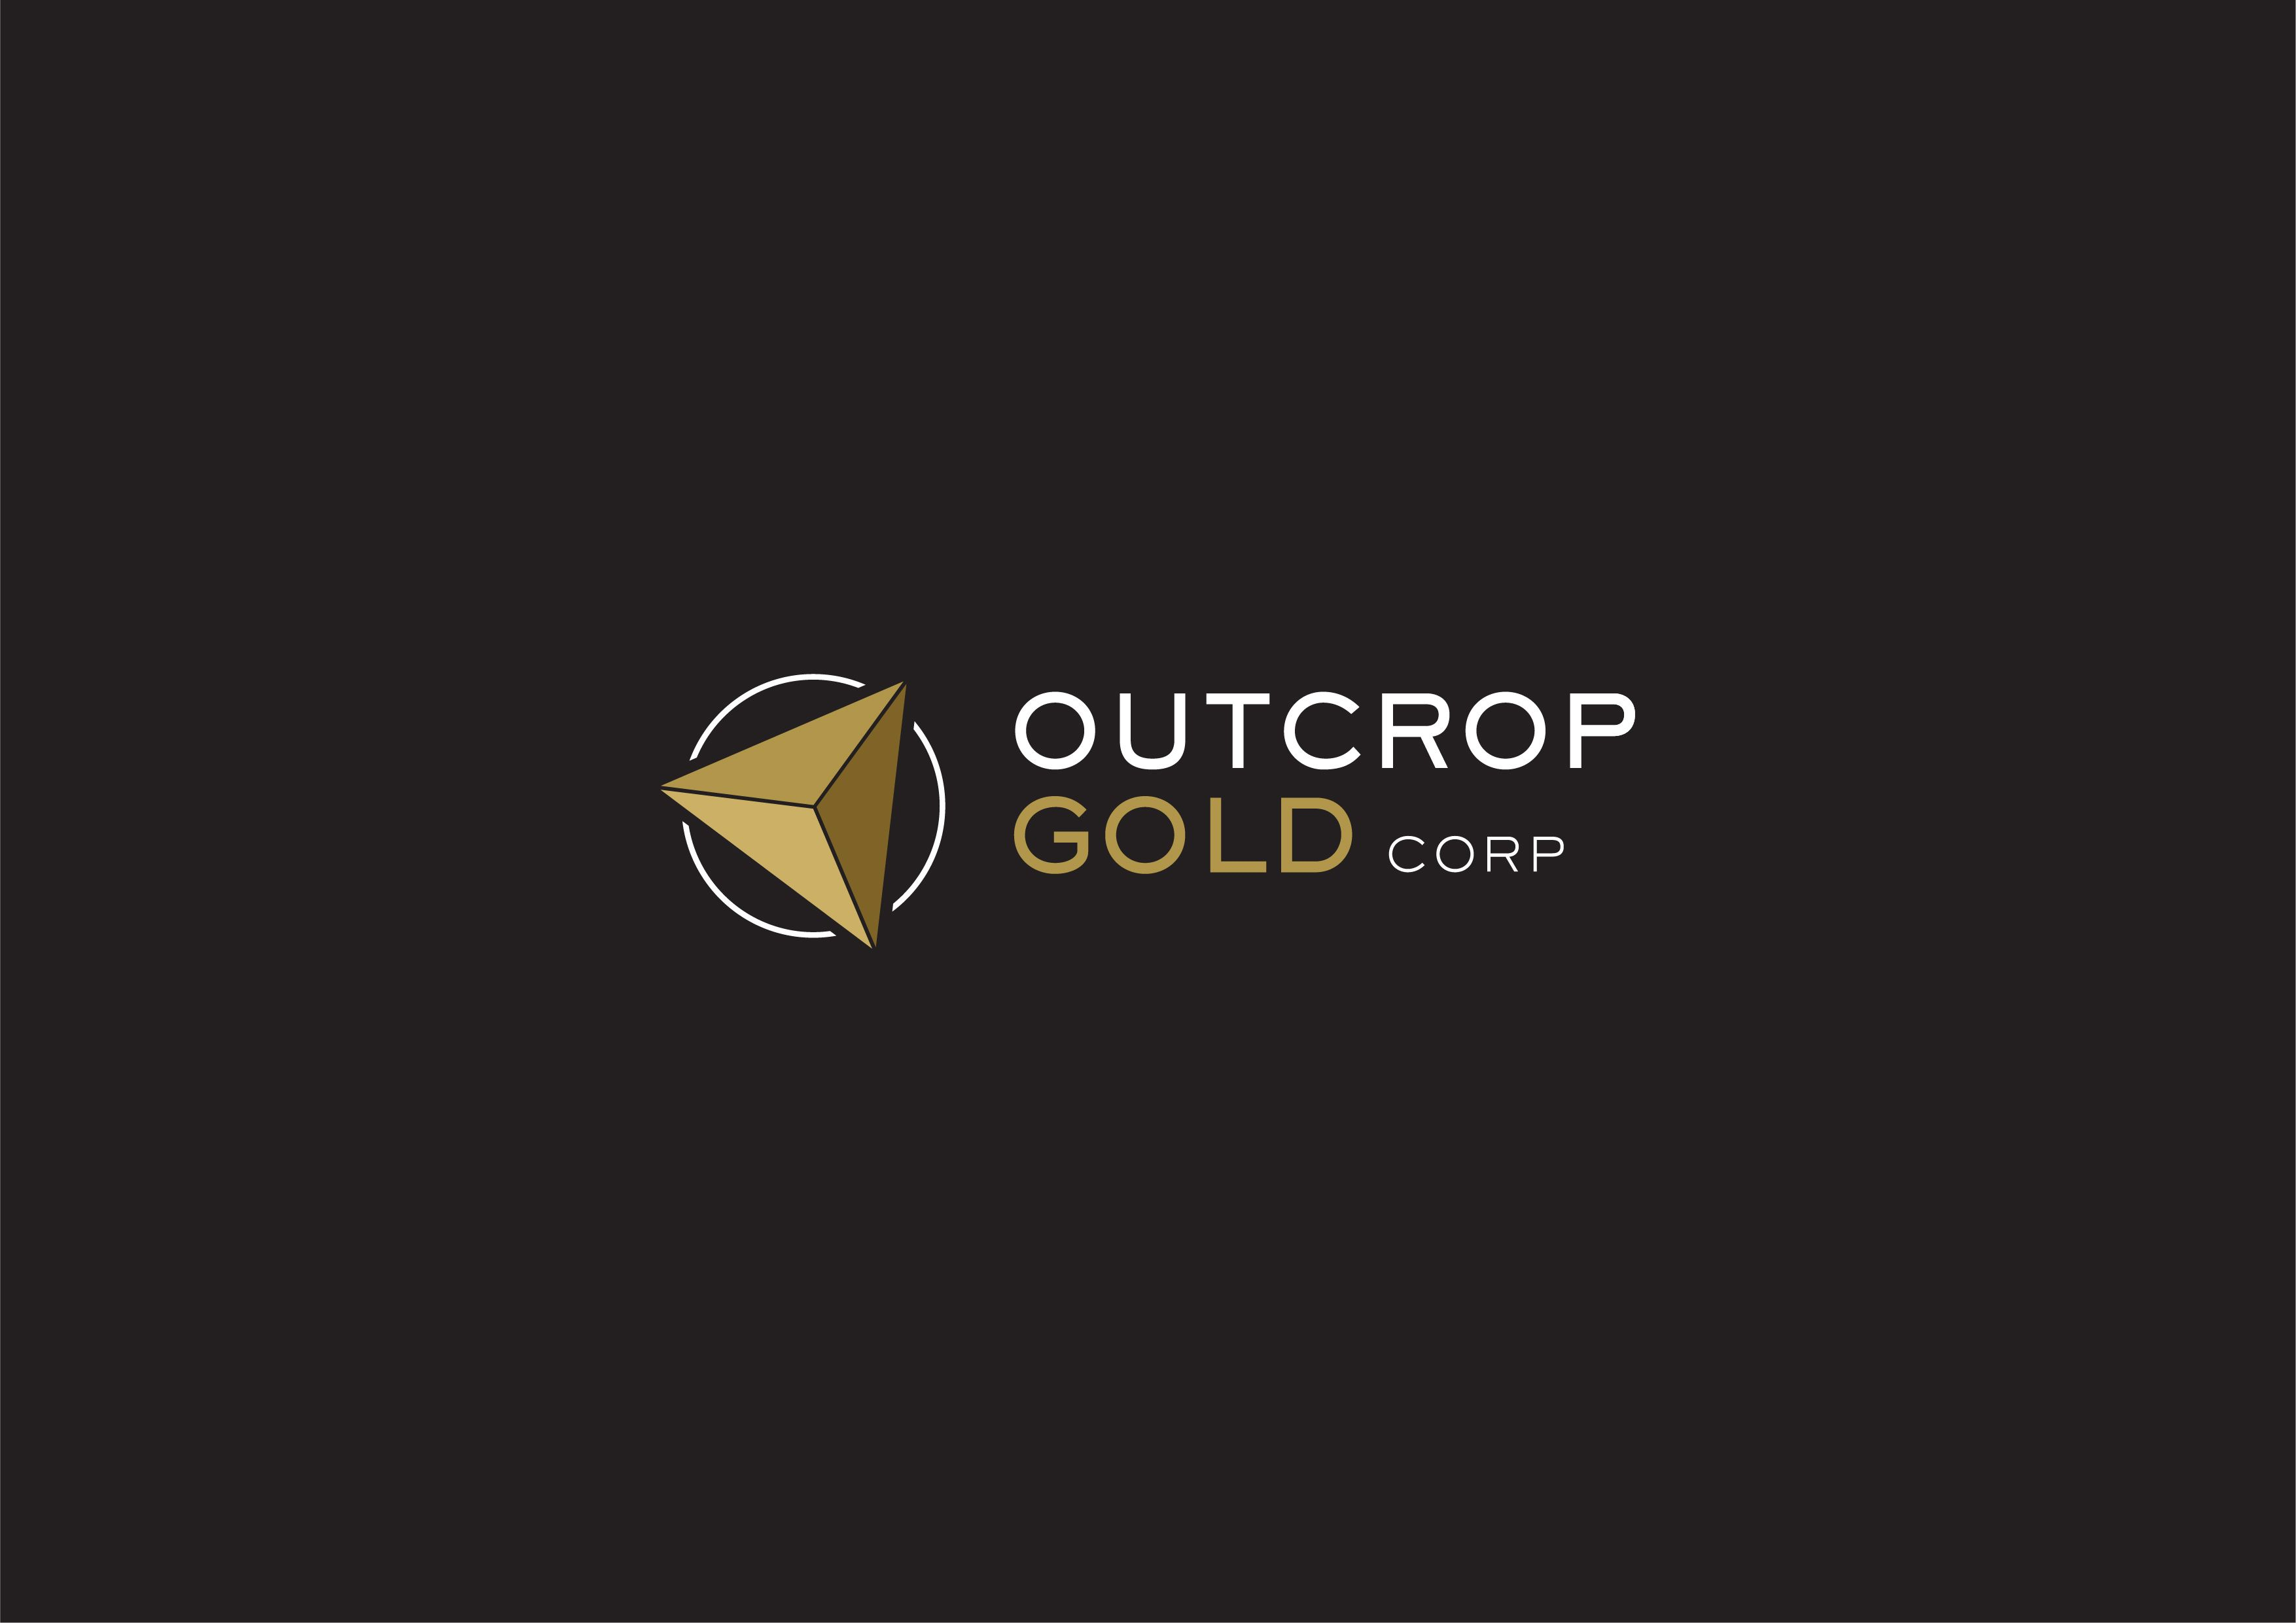 Outcrop Gold Corp.